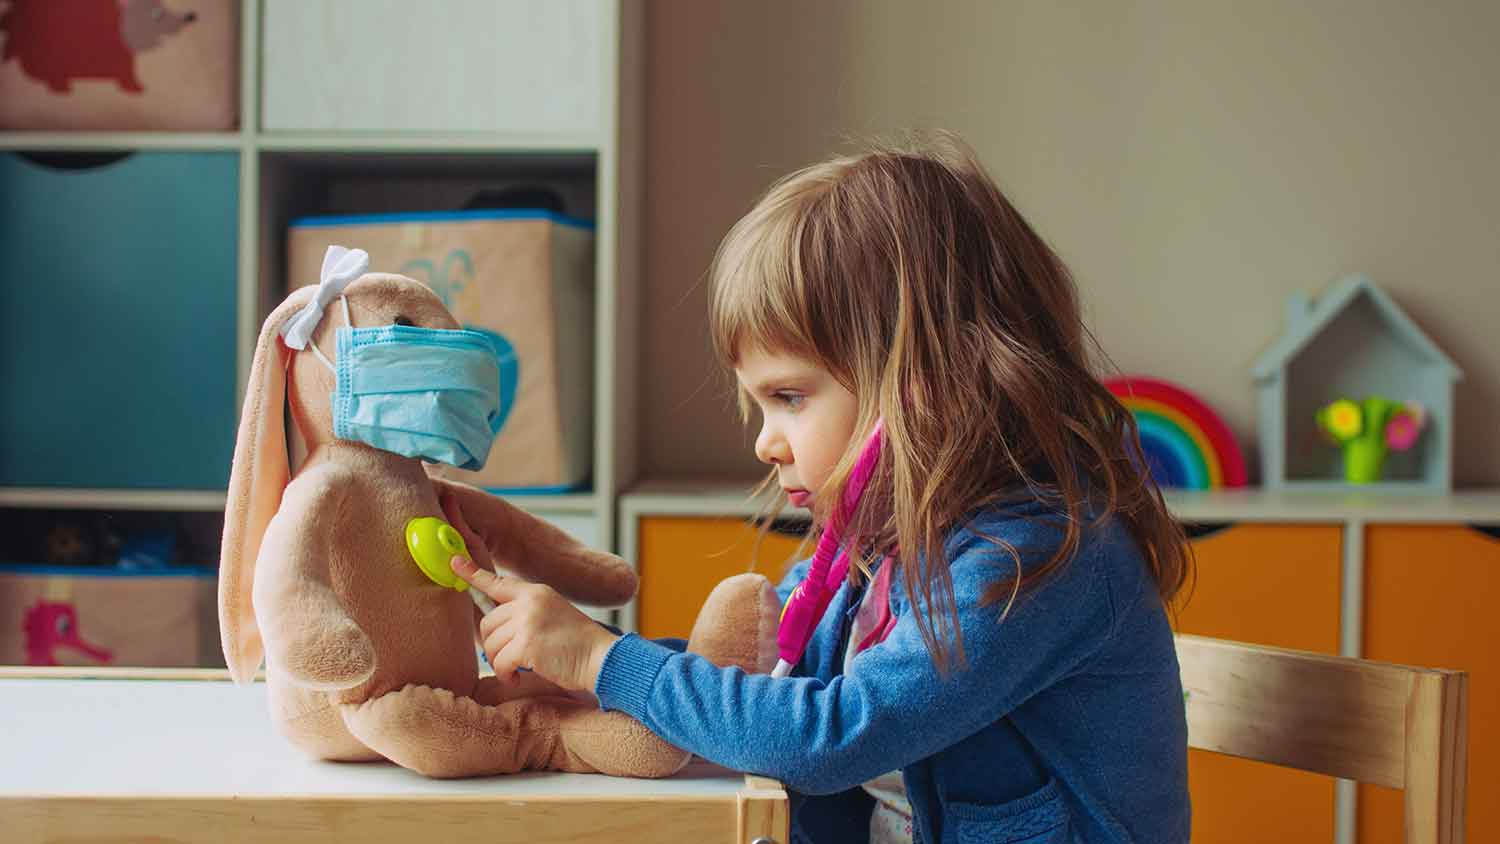 Young toddler with a toy stethascope and using it on a stuffed toy